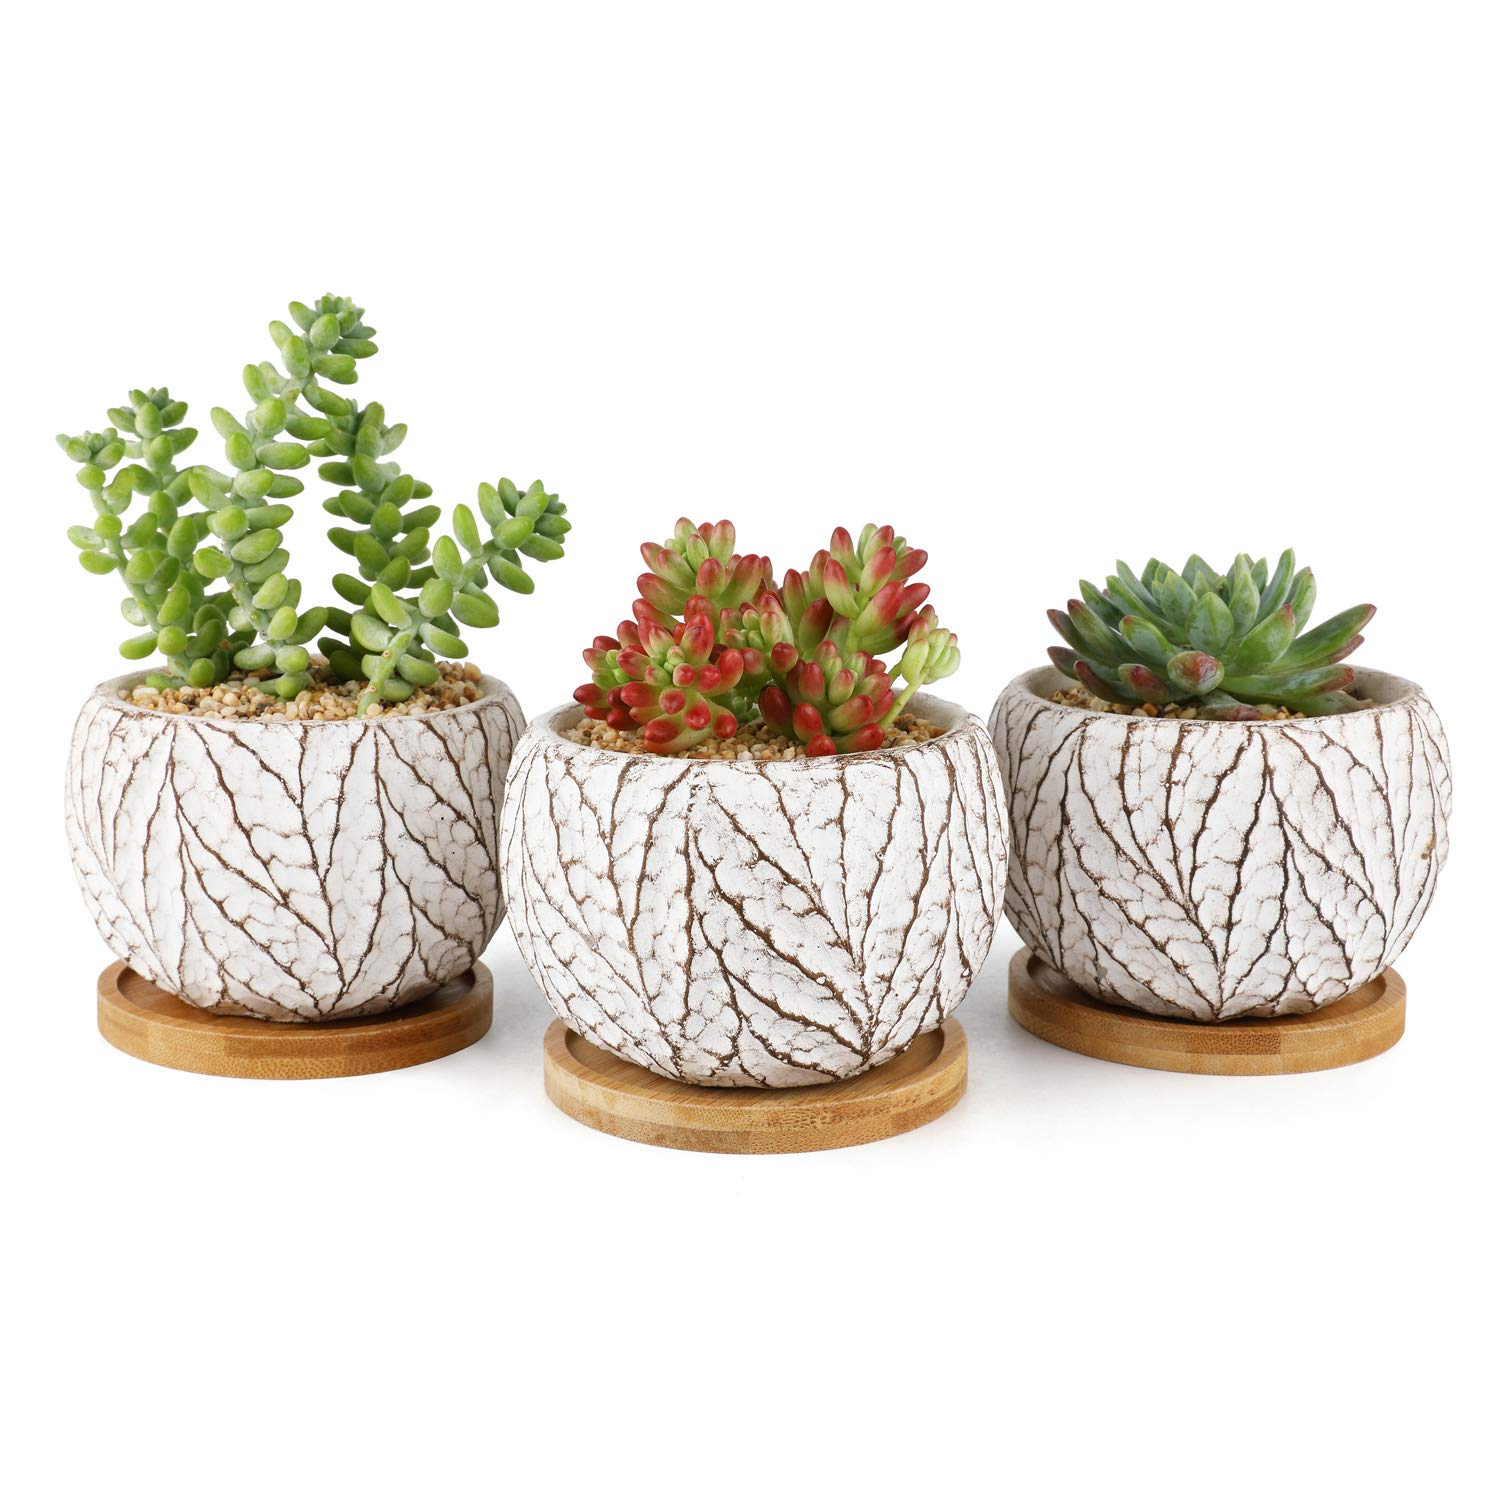 T4U Small Succulent Pots Cement Planters for Succulents, 4 Inch Succulent Small Pot Set of 3, Leaf Pattern Indoor Concrete Cactus Plant Pot with Saucer Round Succulent Holder for Home Office Table